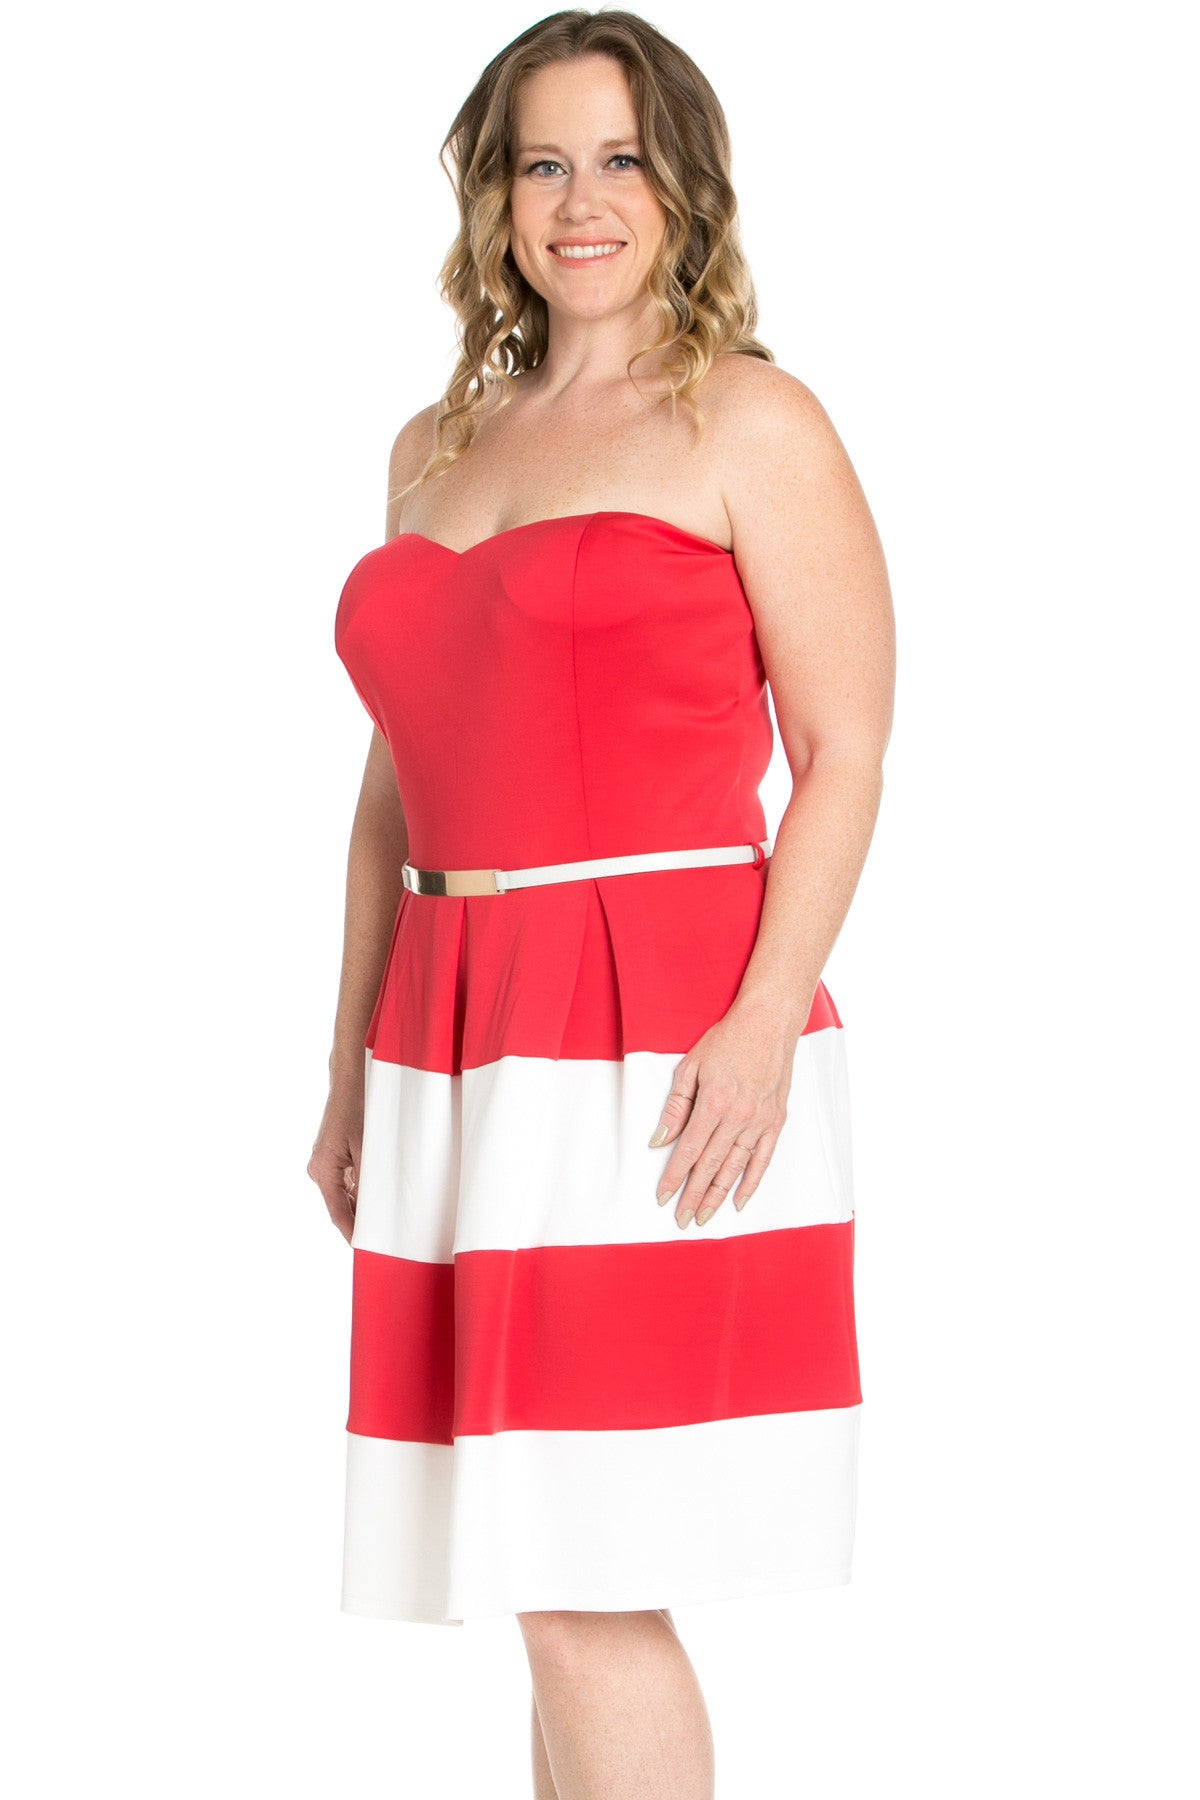 Sweetheart Color Block in Coral Tube Dress with Belt - Dresses - My Yuccie - 2